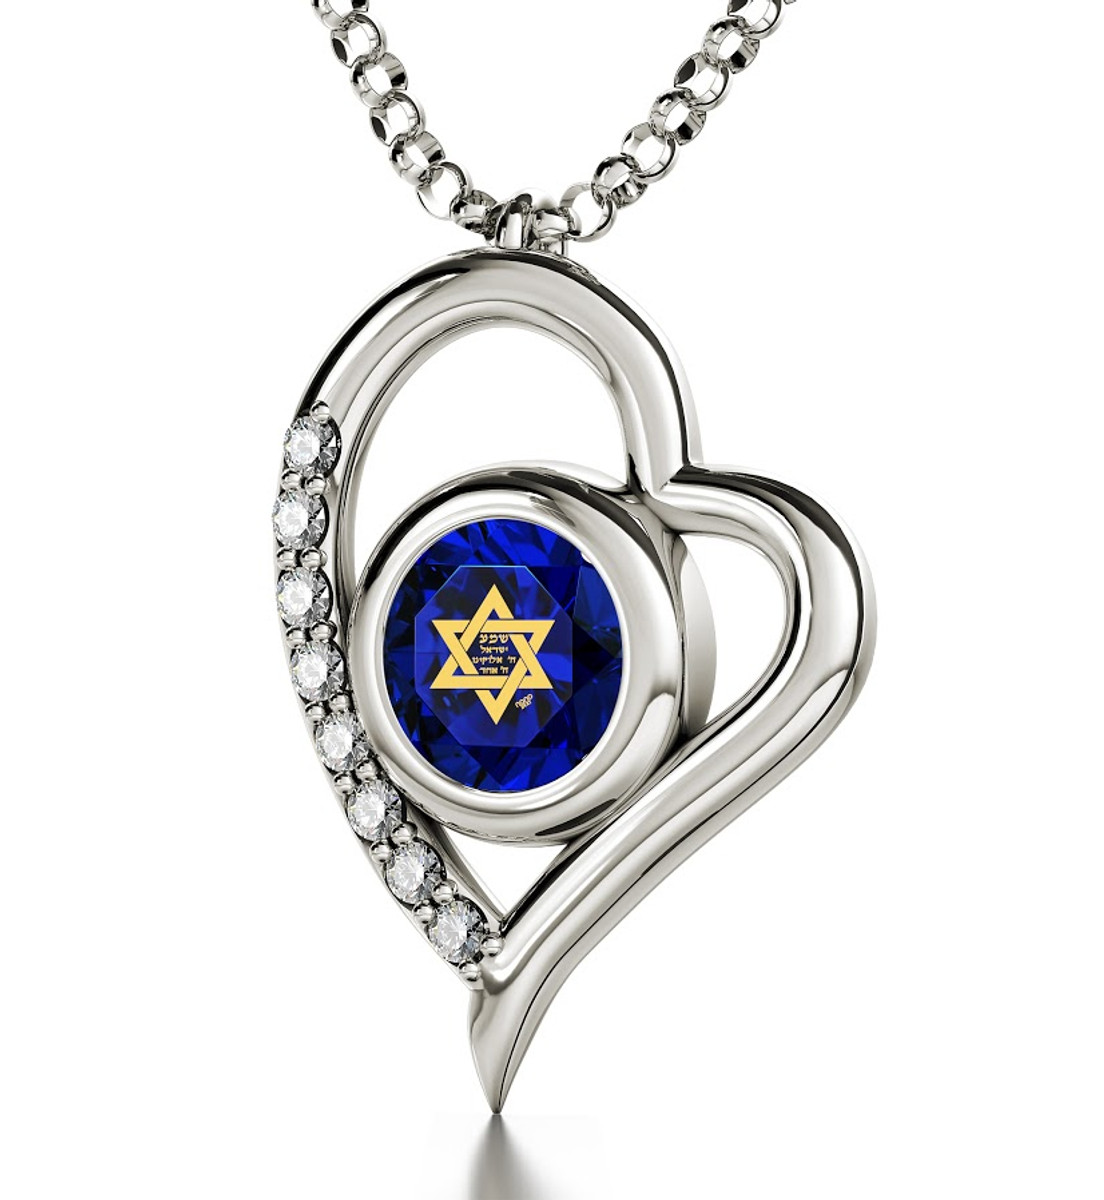 Blue Silver Heart Star of David necklace from Inspirational Jewelry